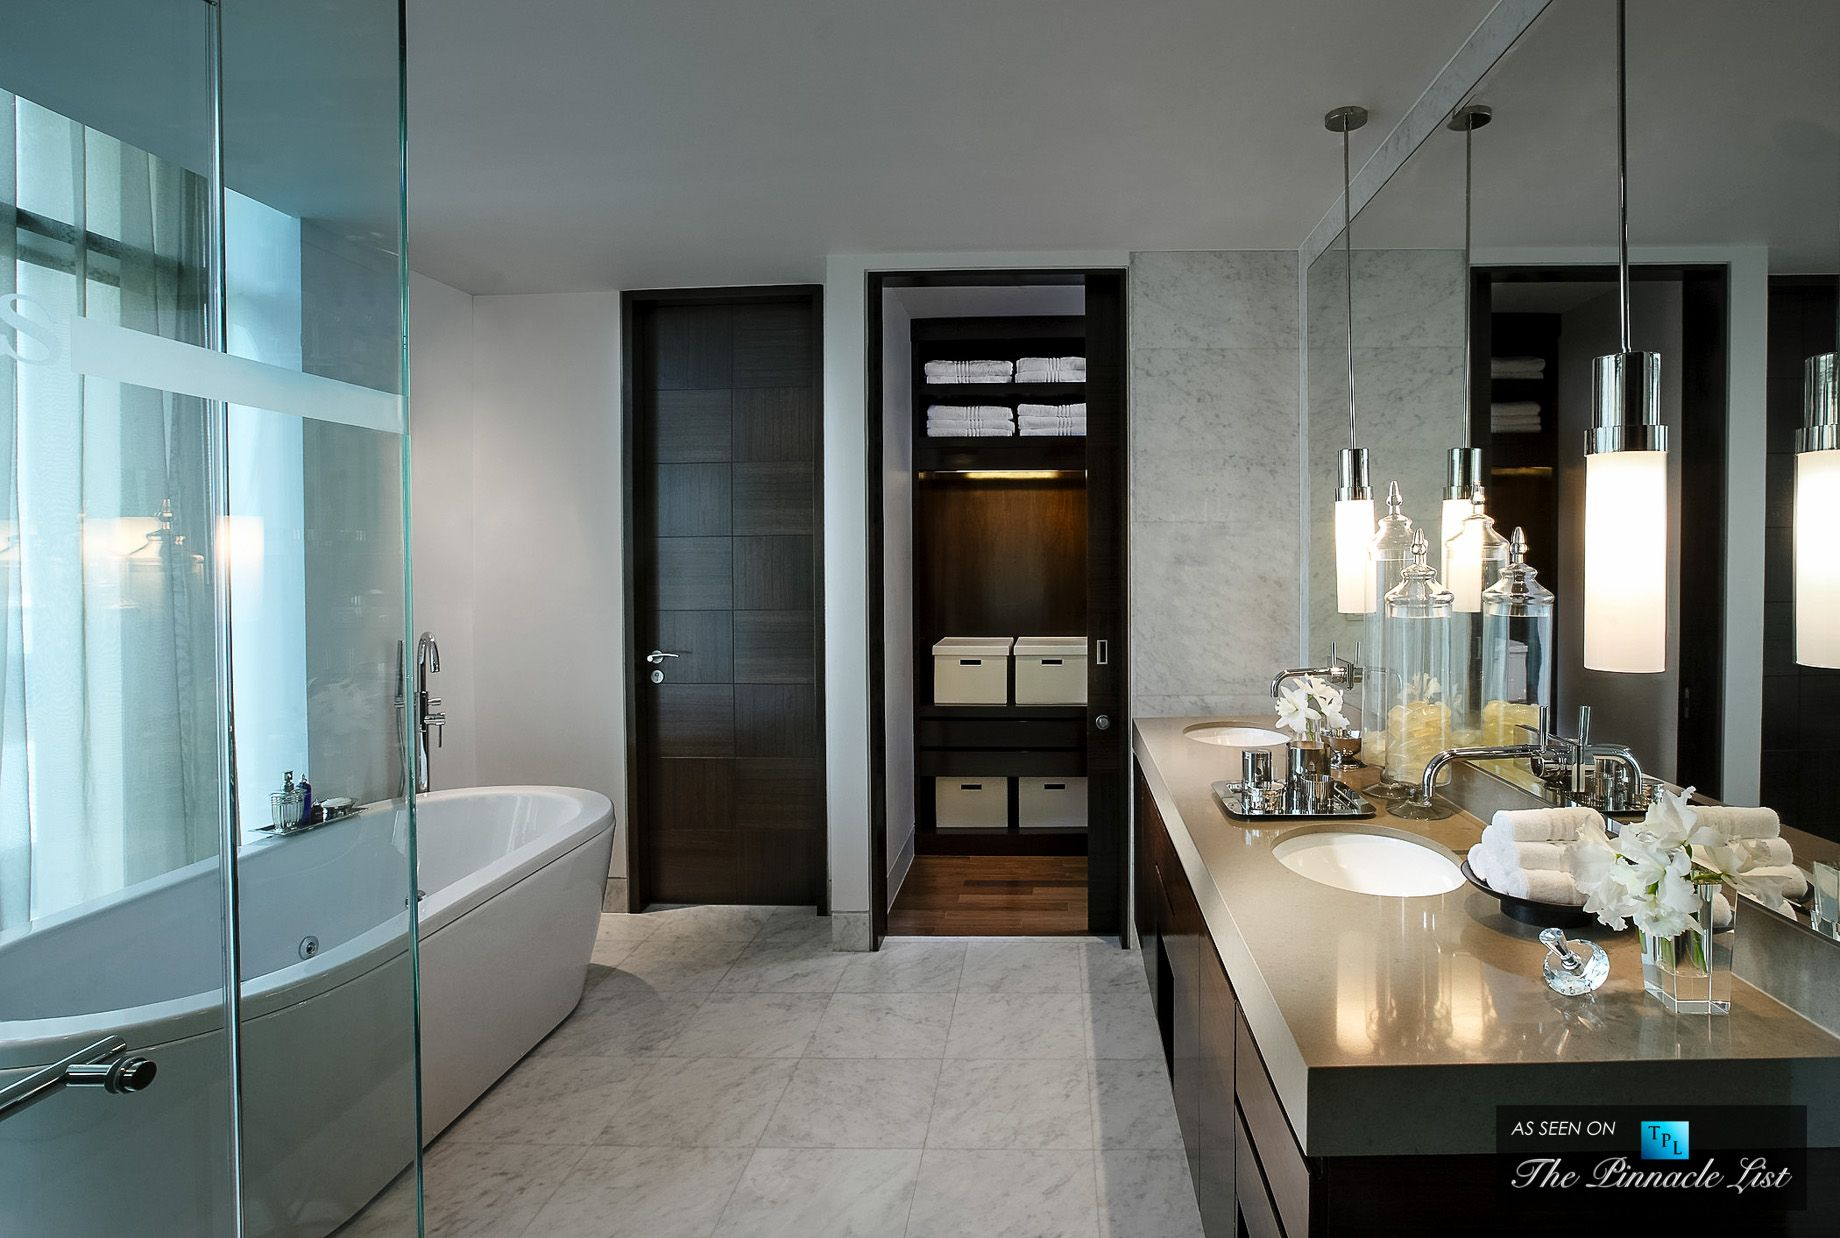 Luxury Bathrooms Hotels st. regis luxury hotel - bangkok, thailand - residence bathroom